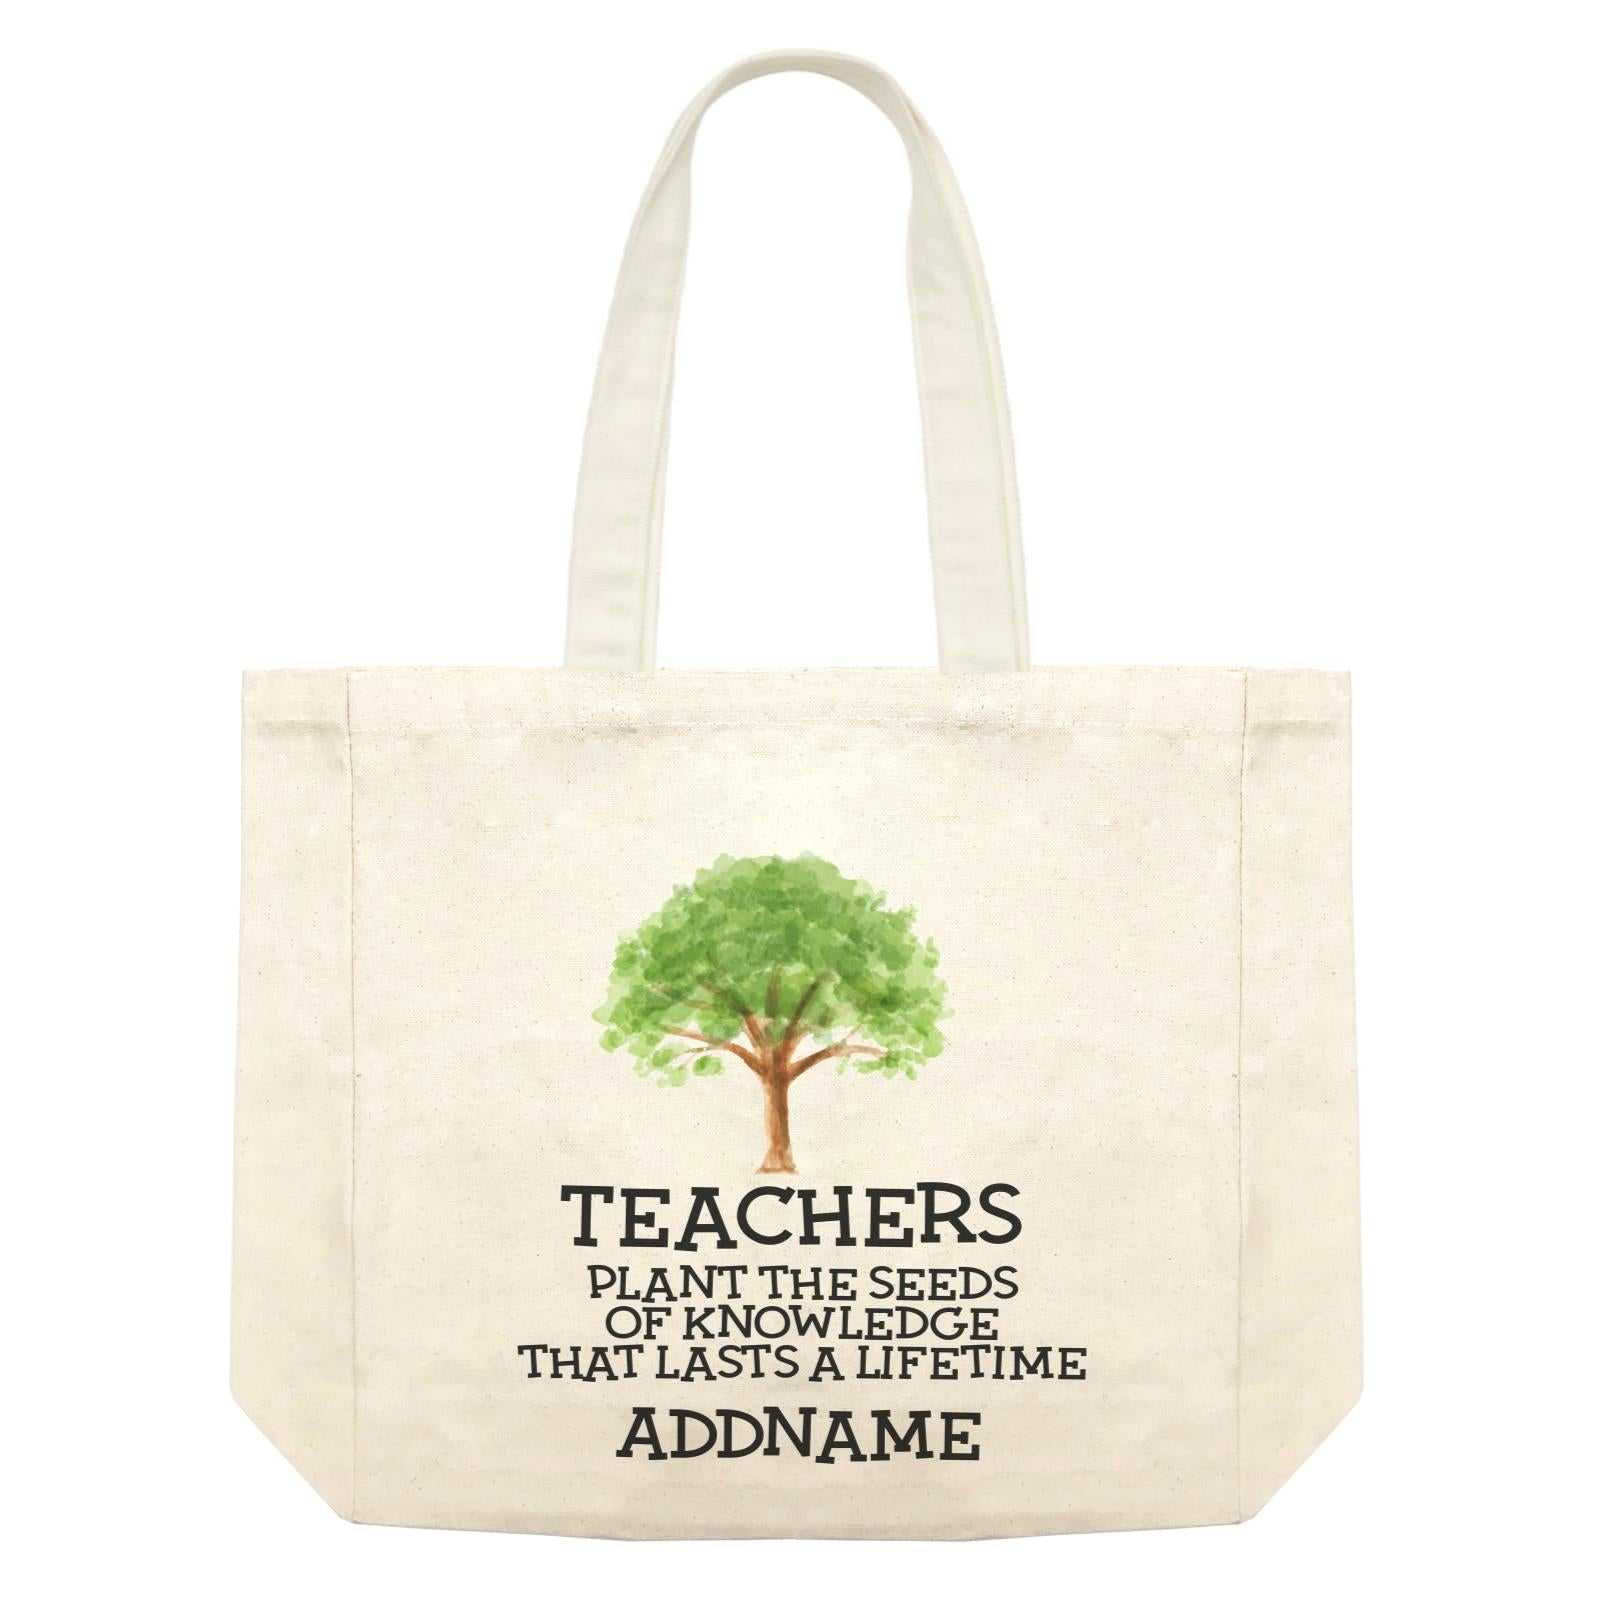 Teacher Quotes 2 Teachers Plant The Seeds Of Knowledge That Lasts A Lifetime Addname Shopping Bag